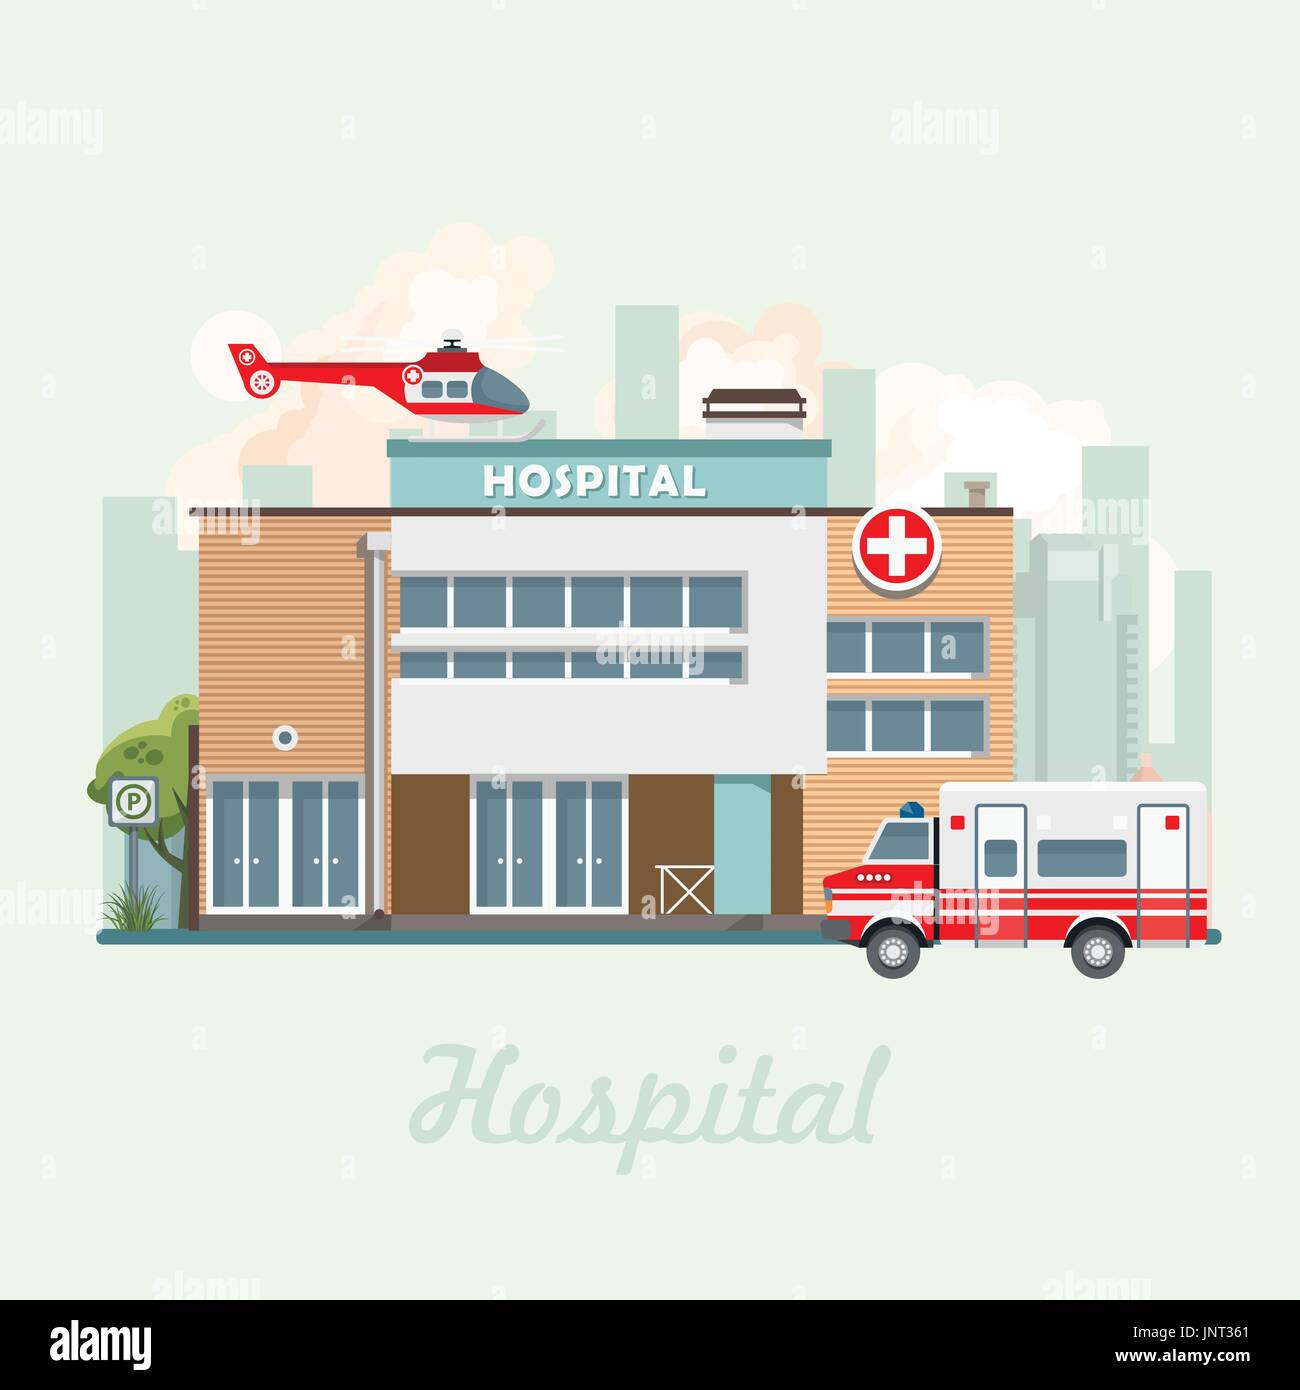 Hospital building vector illustration in flat design. Modern clinic with helicopter - Stock Image